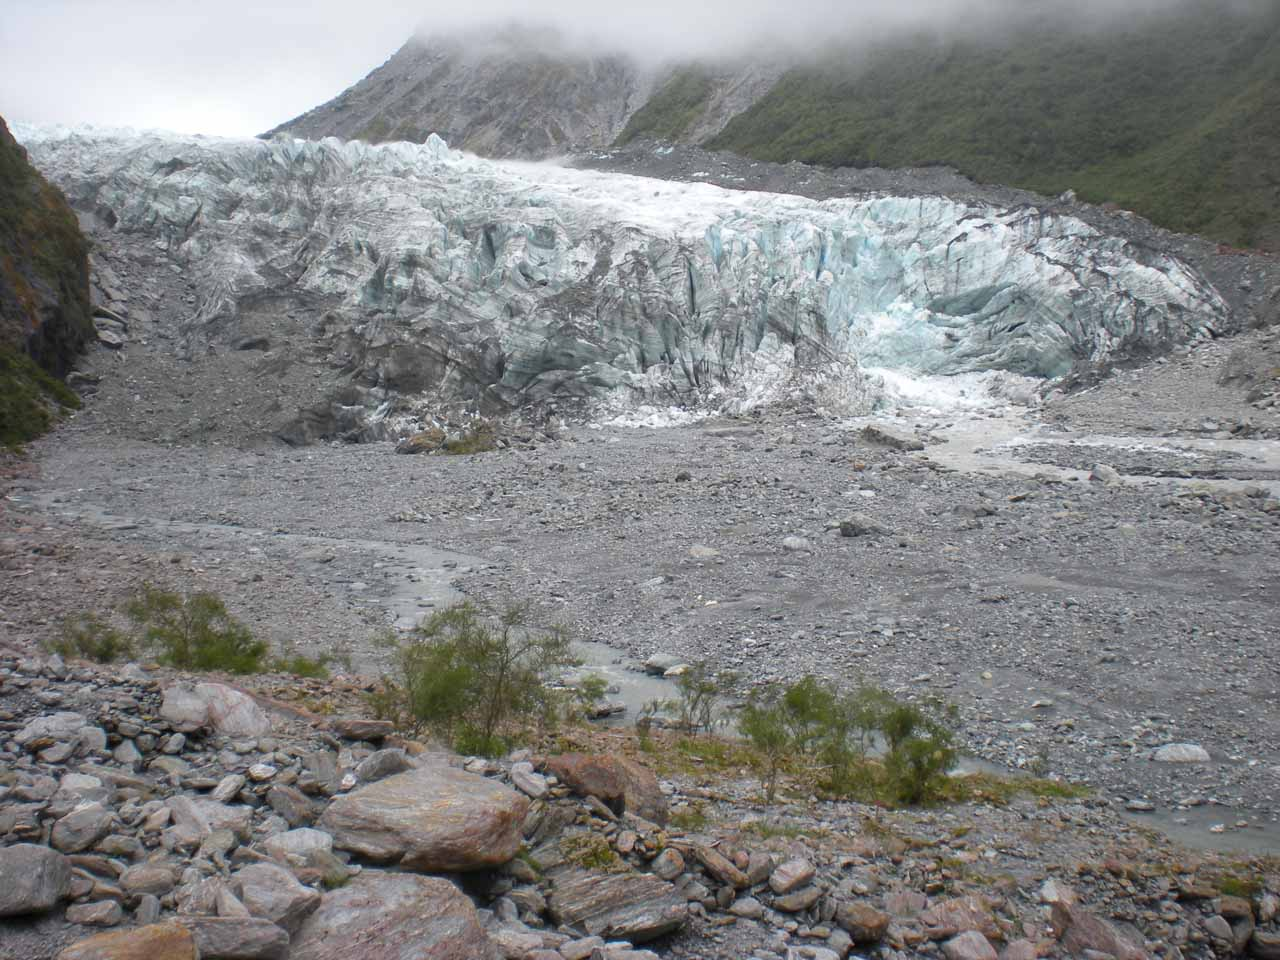 Looking across the span of the terminus of Fox Glacier